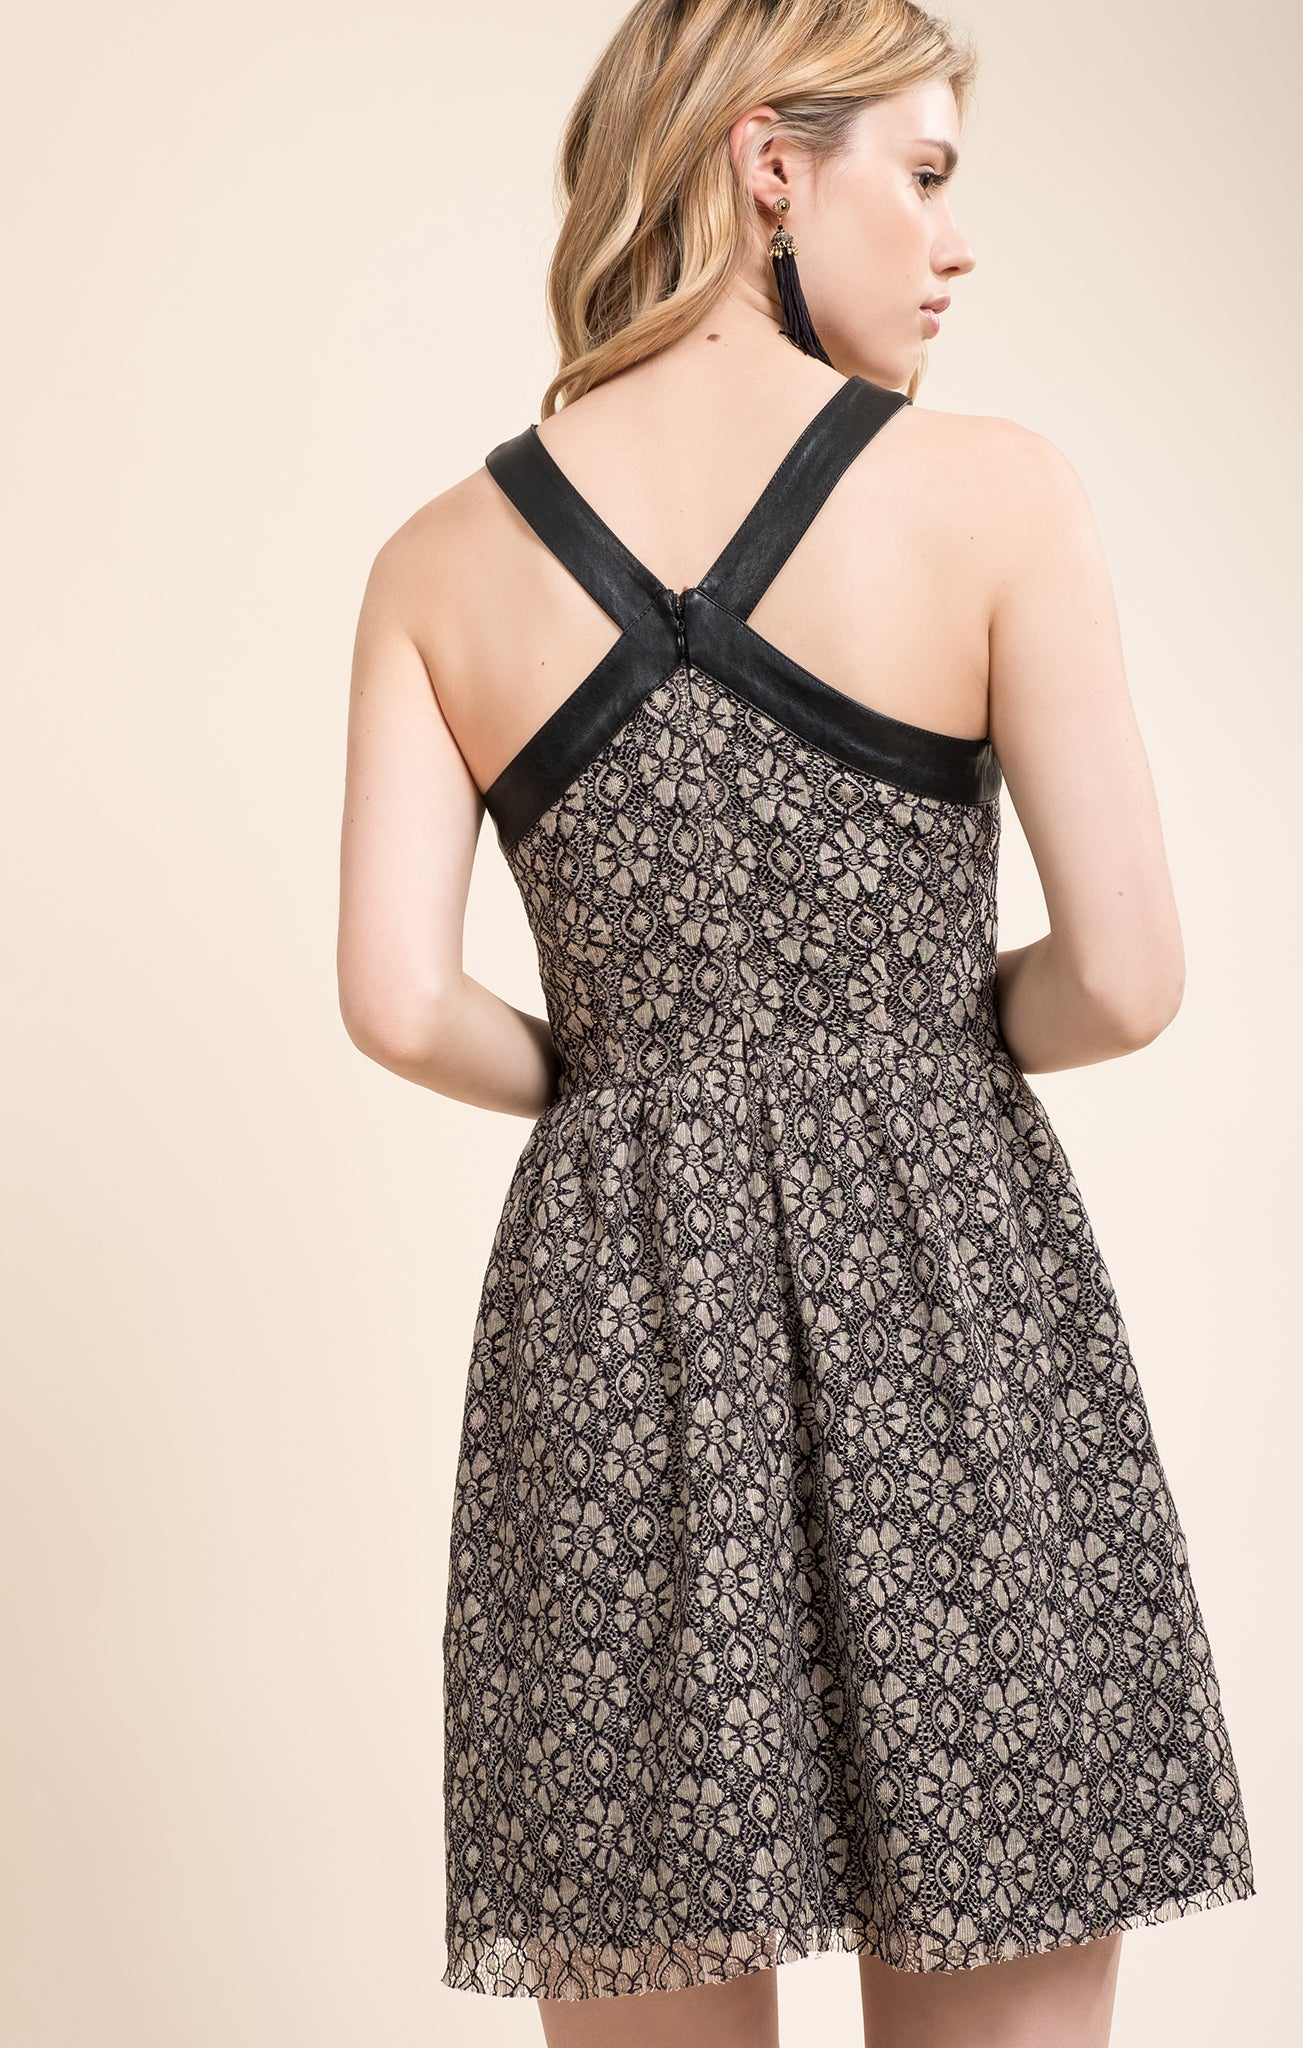 CONTRAST FABRIC DETAIL LACE DRESS